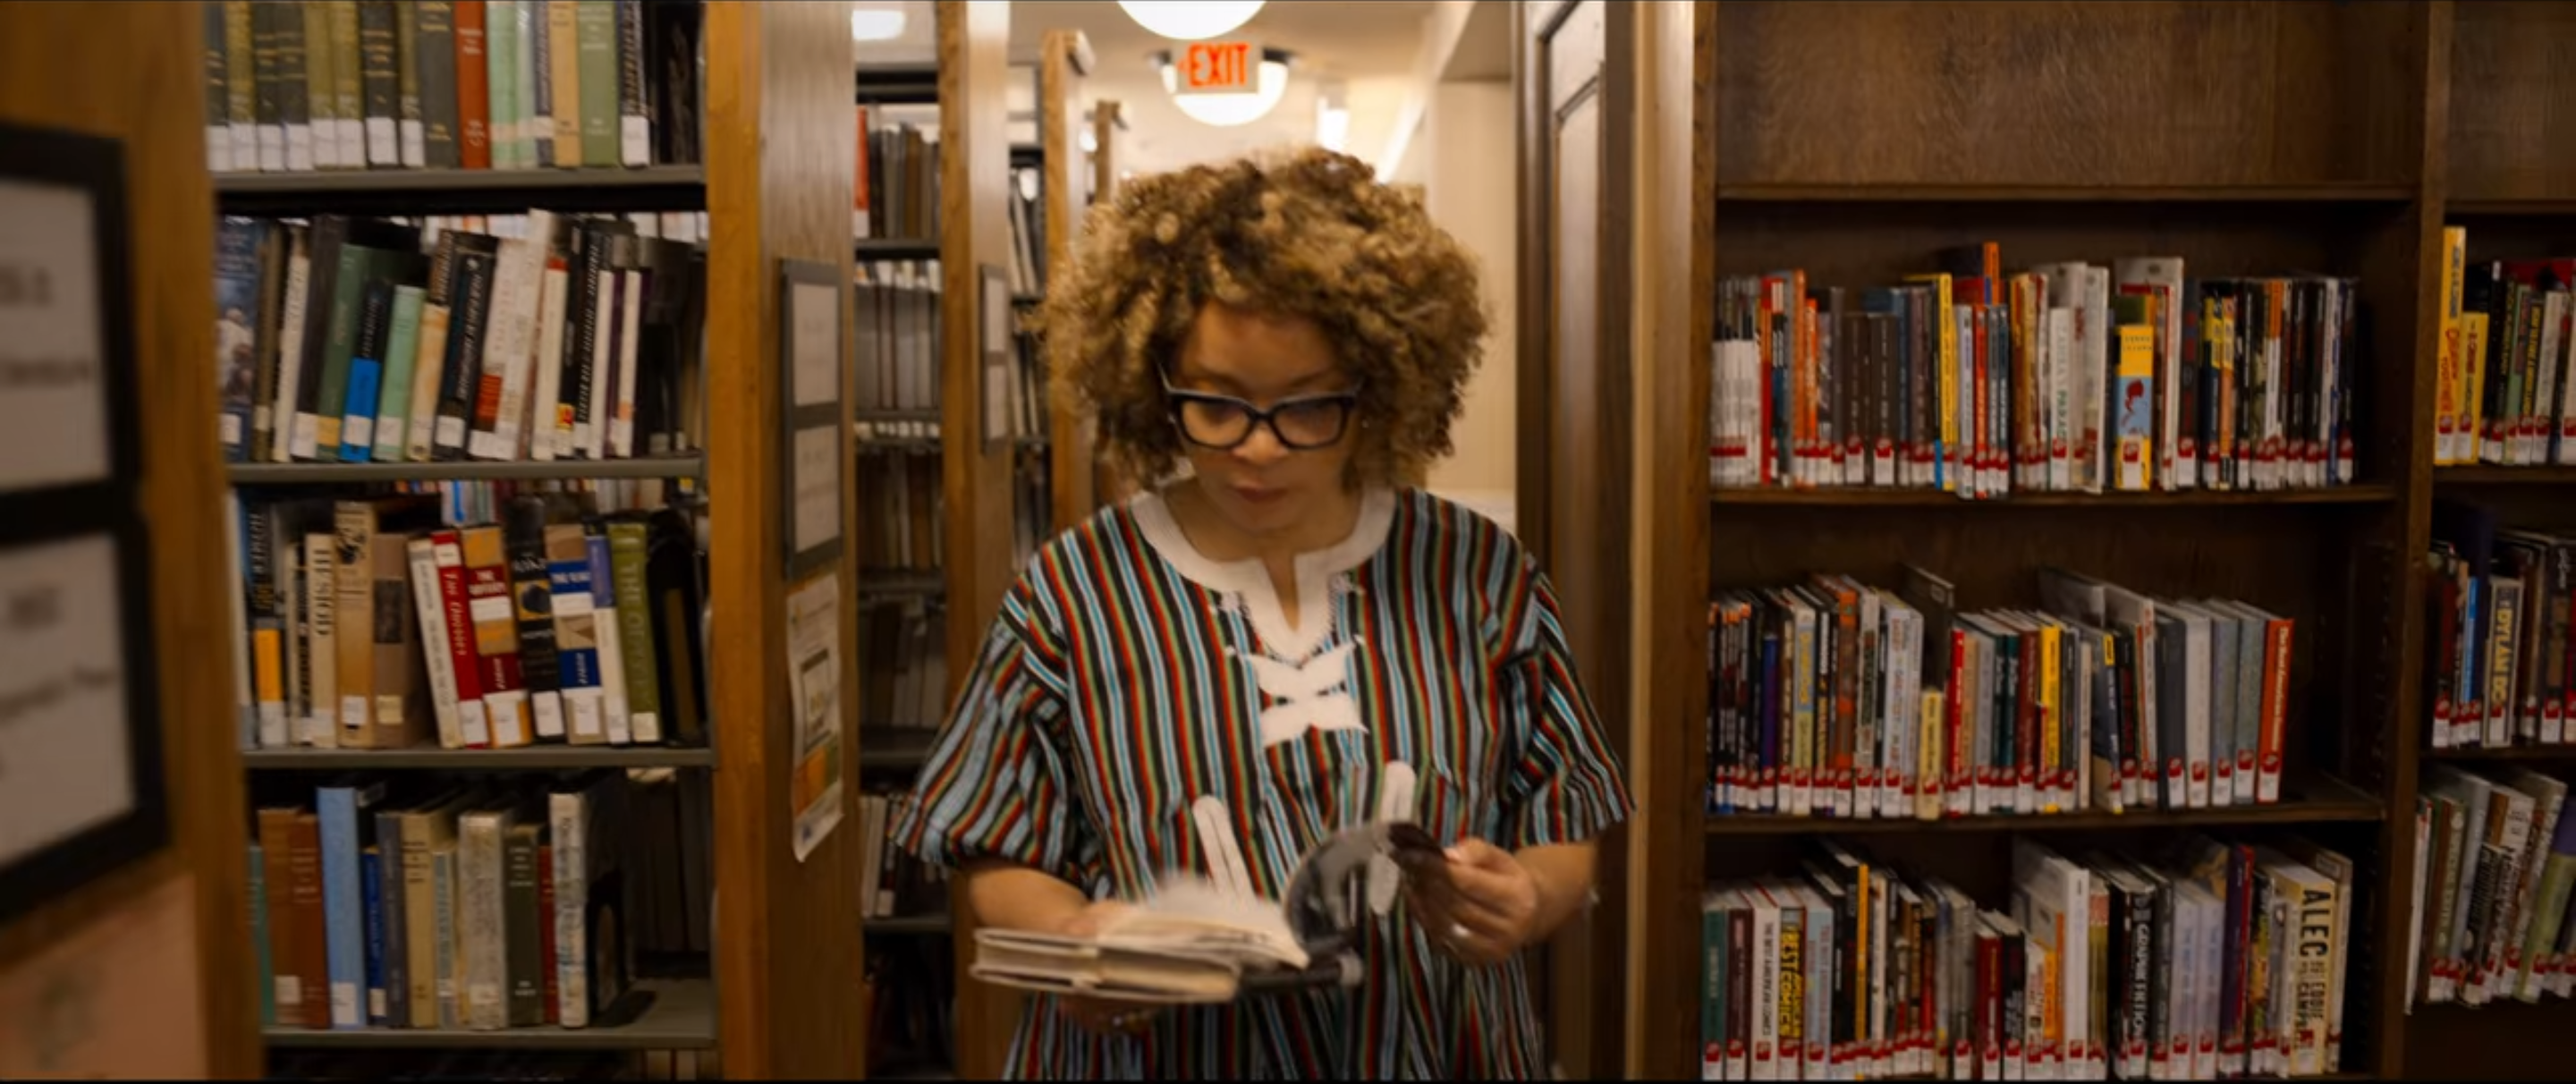 Ruth Carter #blkcreatives creative films on streaming services